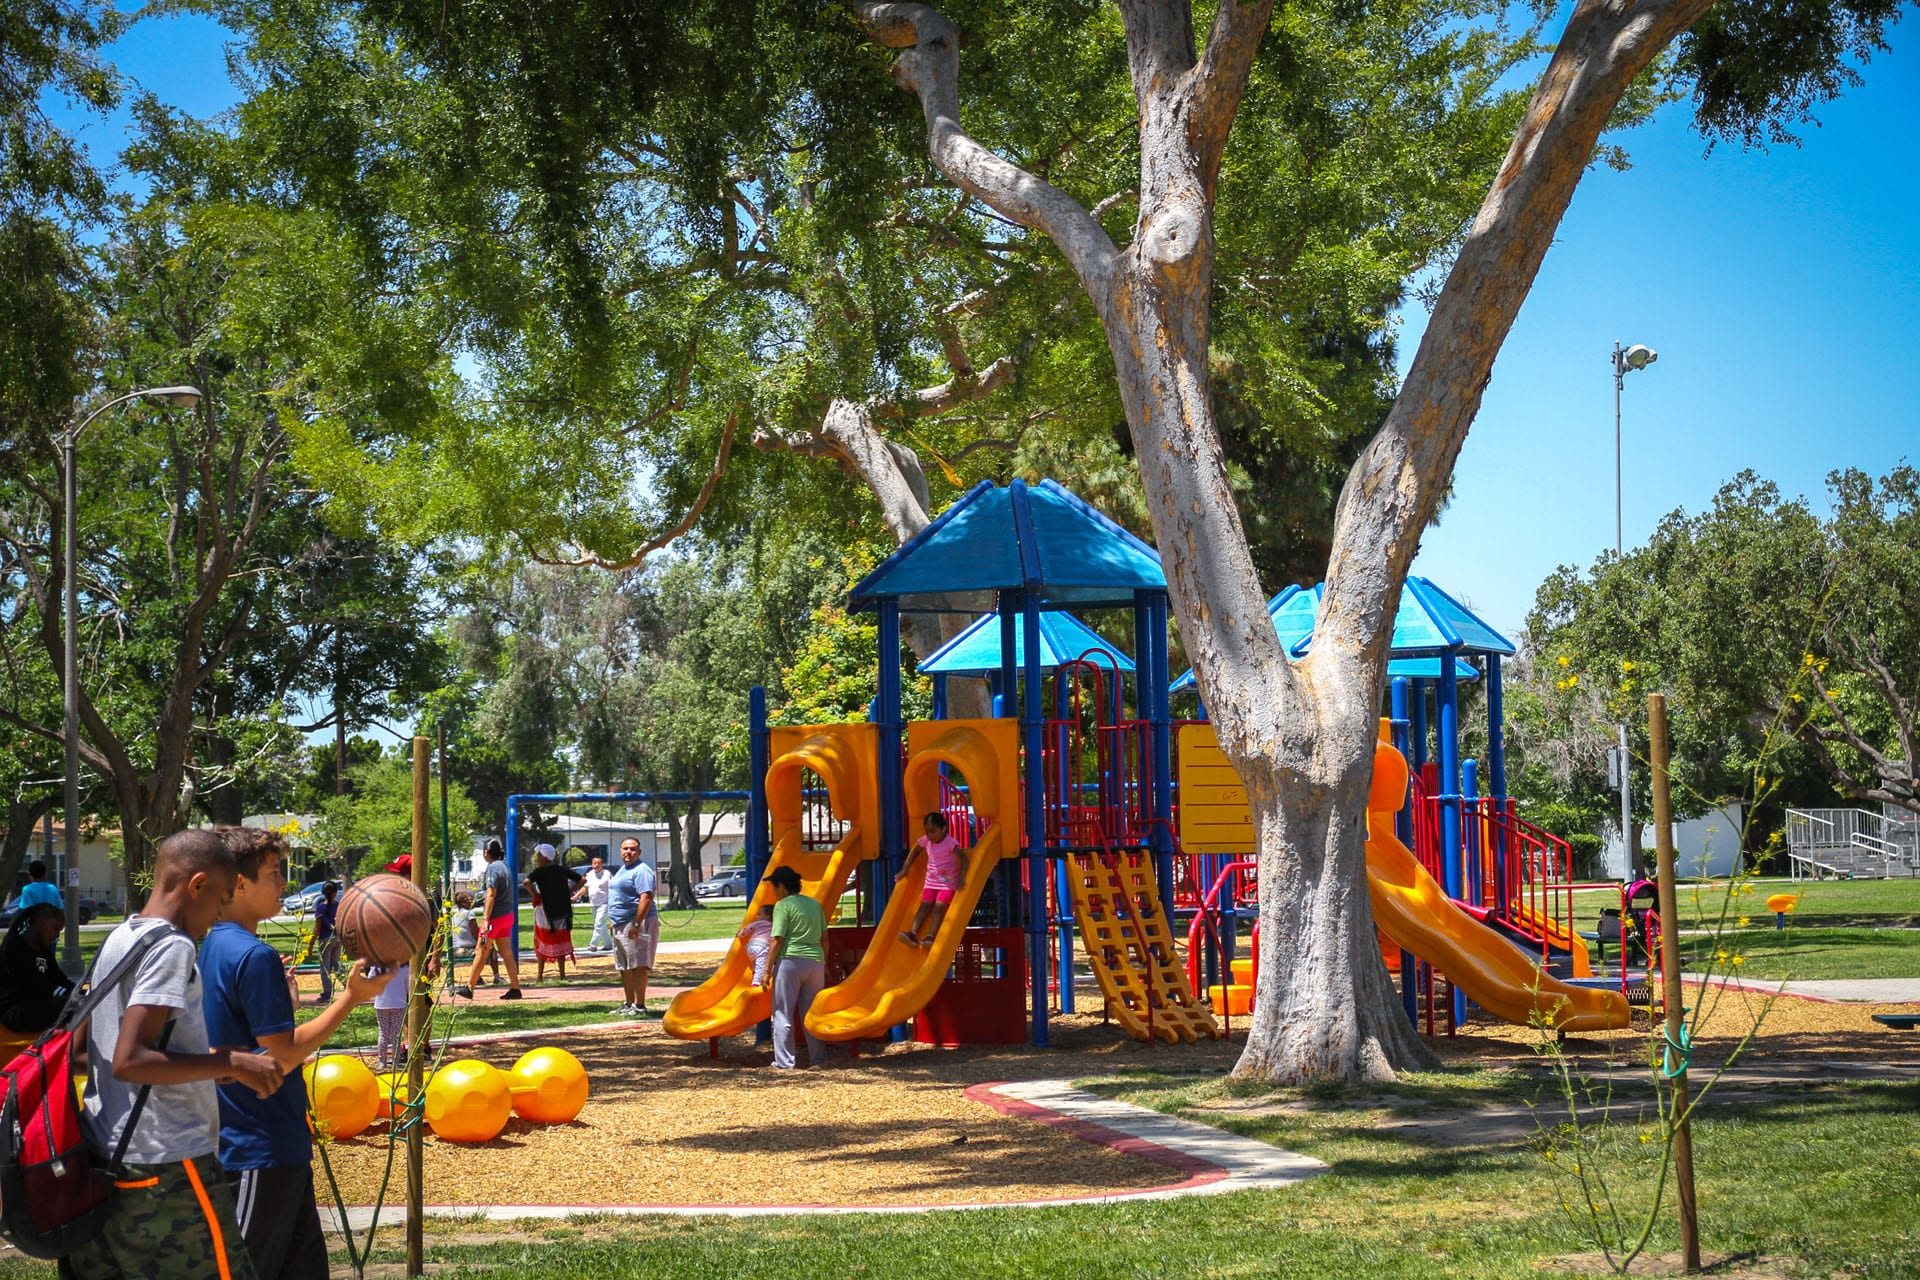 Trees and people on playgrounds